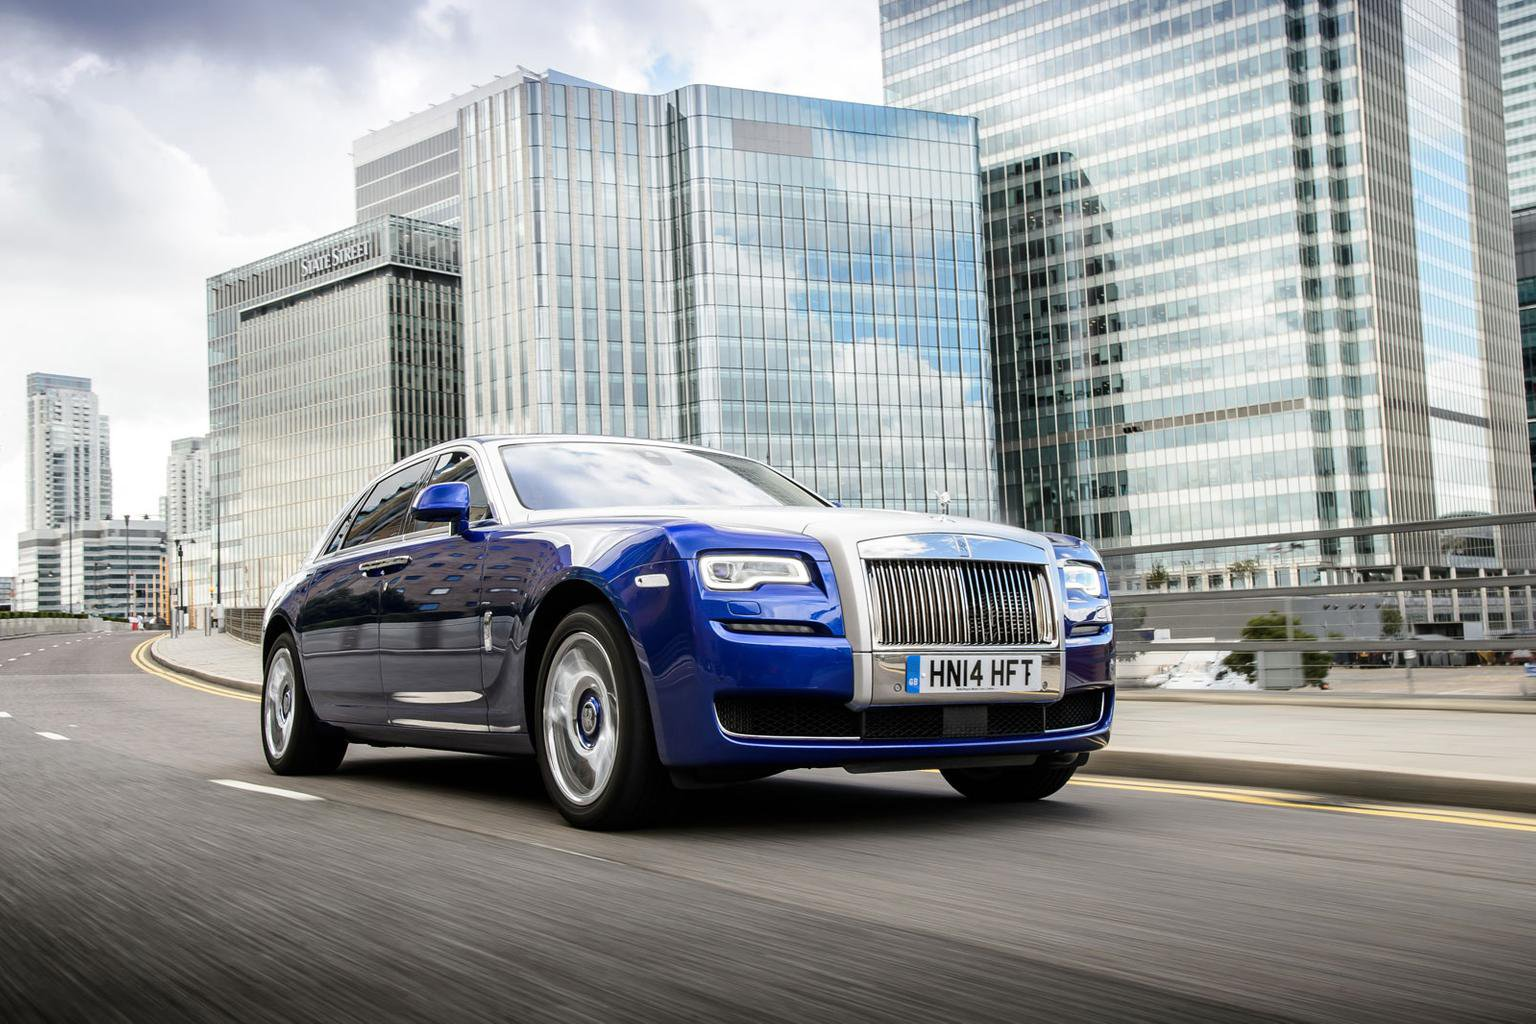 2014 Rolls-Royce Ghost Series II review